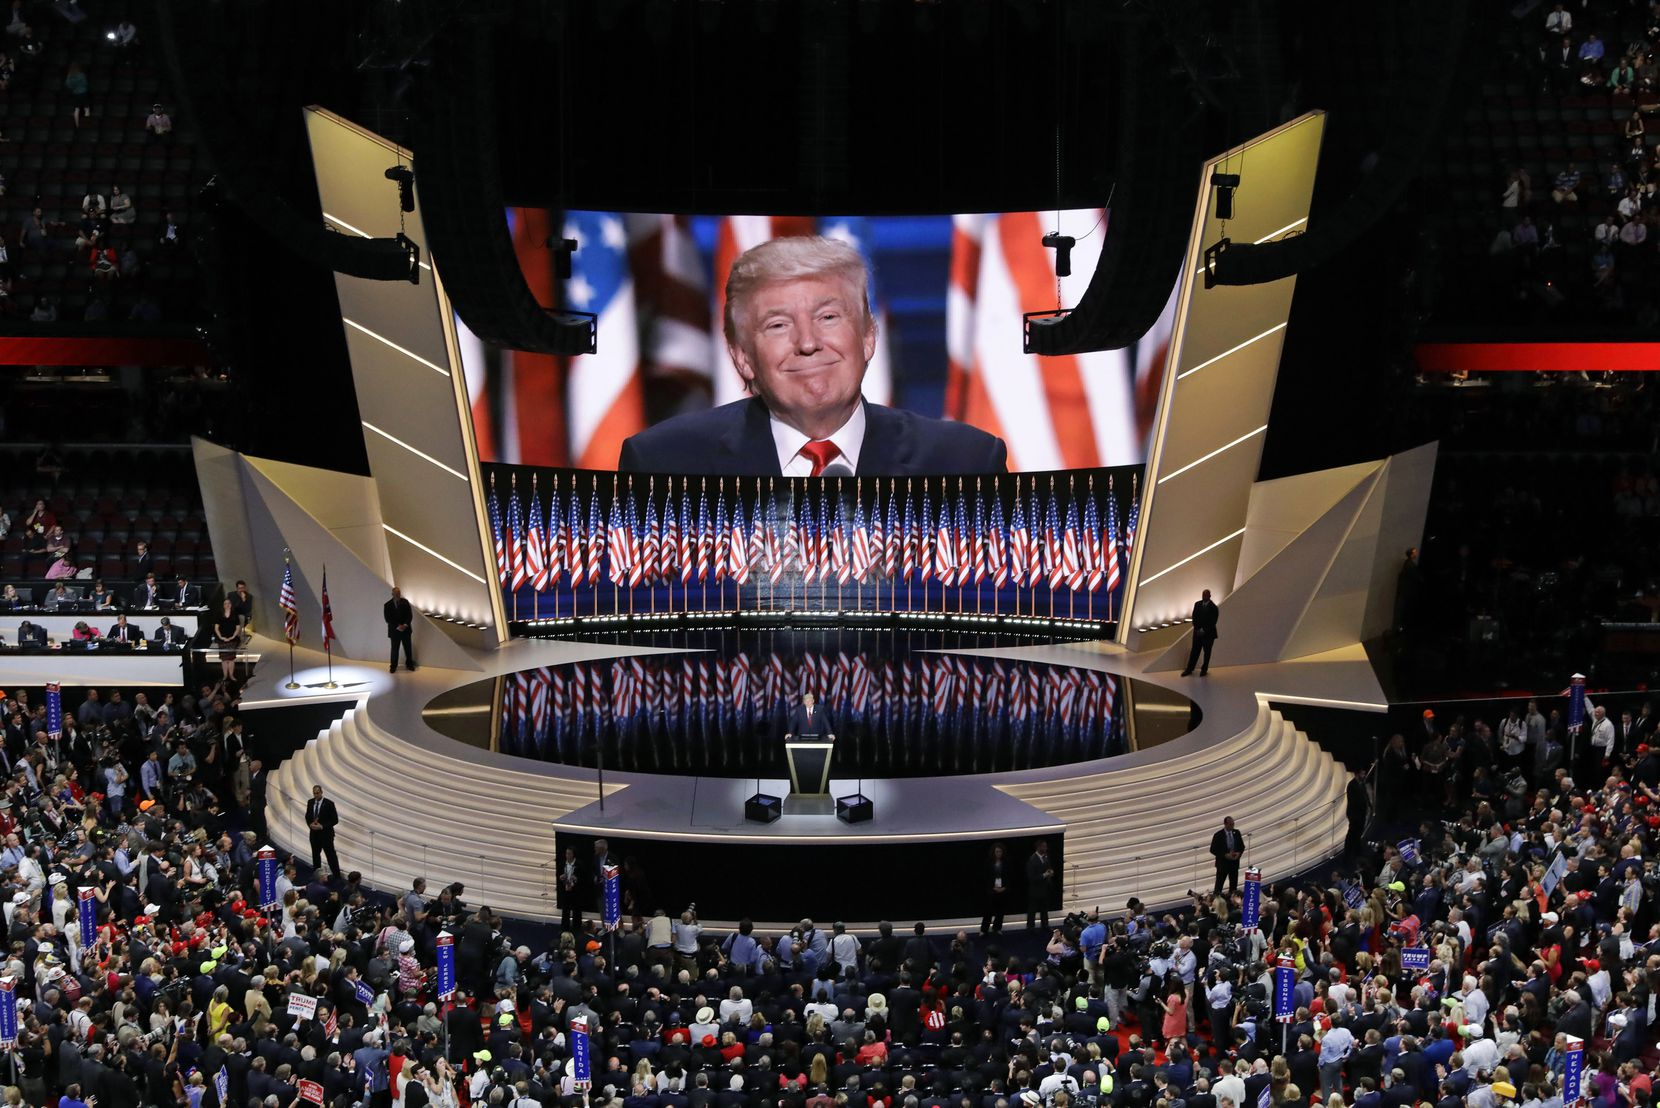 Donald Trump addresses the final session of the 2016 Republican National Convention in Cleveland.